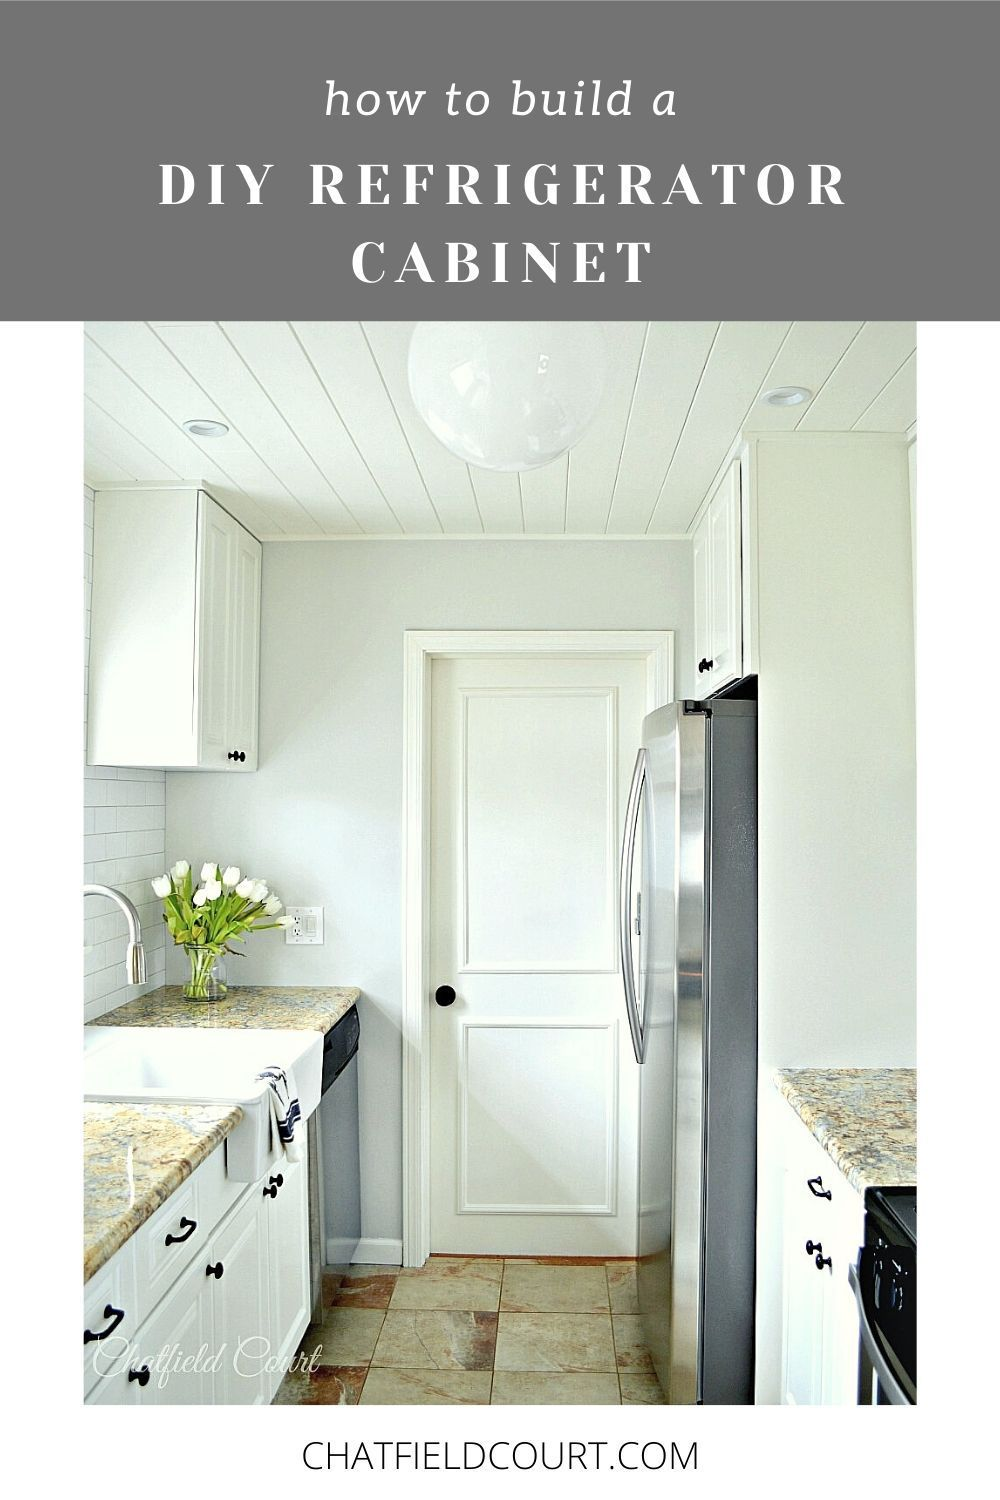 How to build a DIY refrigerator cabinet on a budget with $2 cabinet doors found at Goodwill. Give your refrigerator a custom designer look and add more kitchen storage.